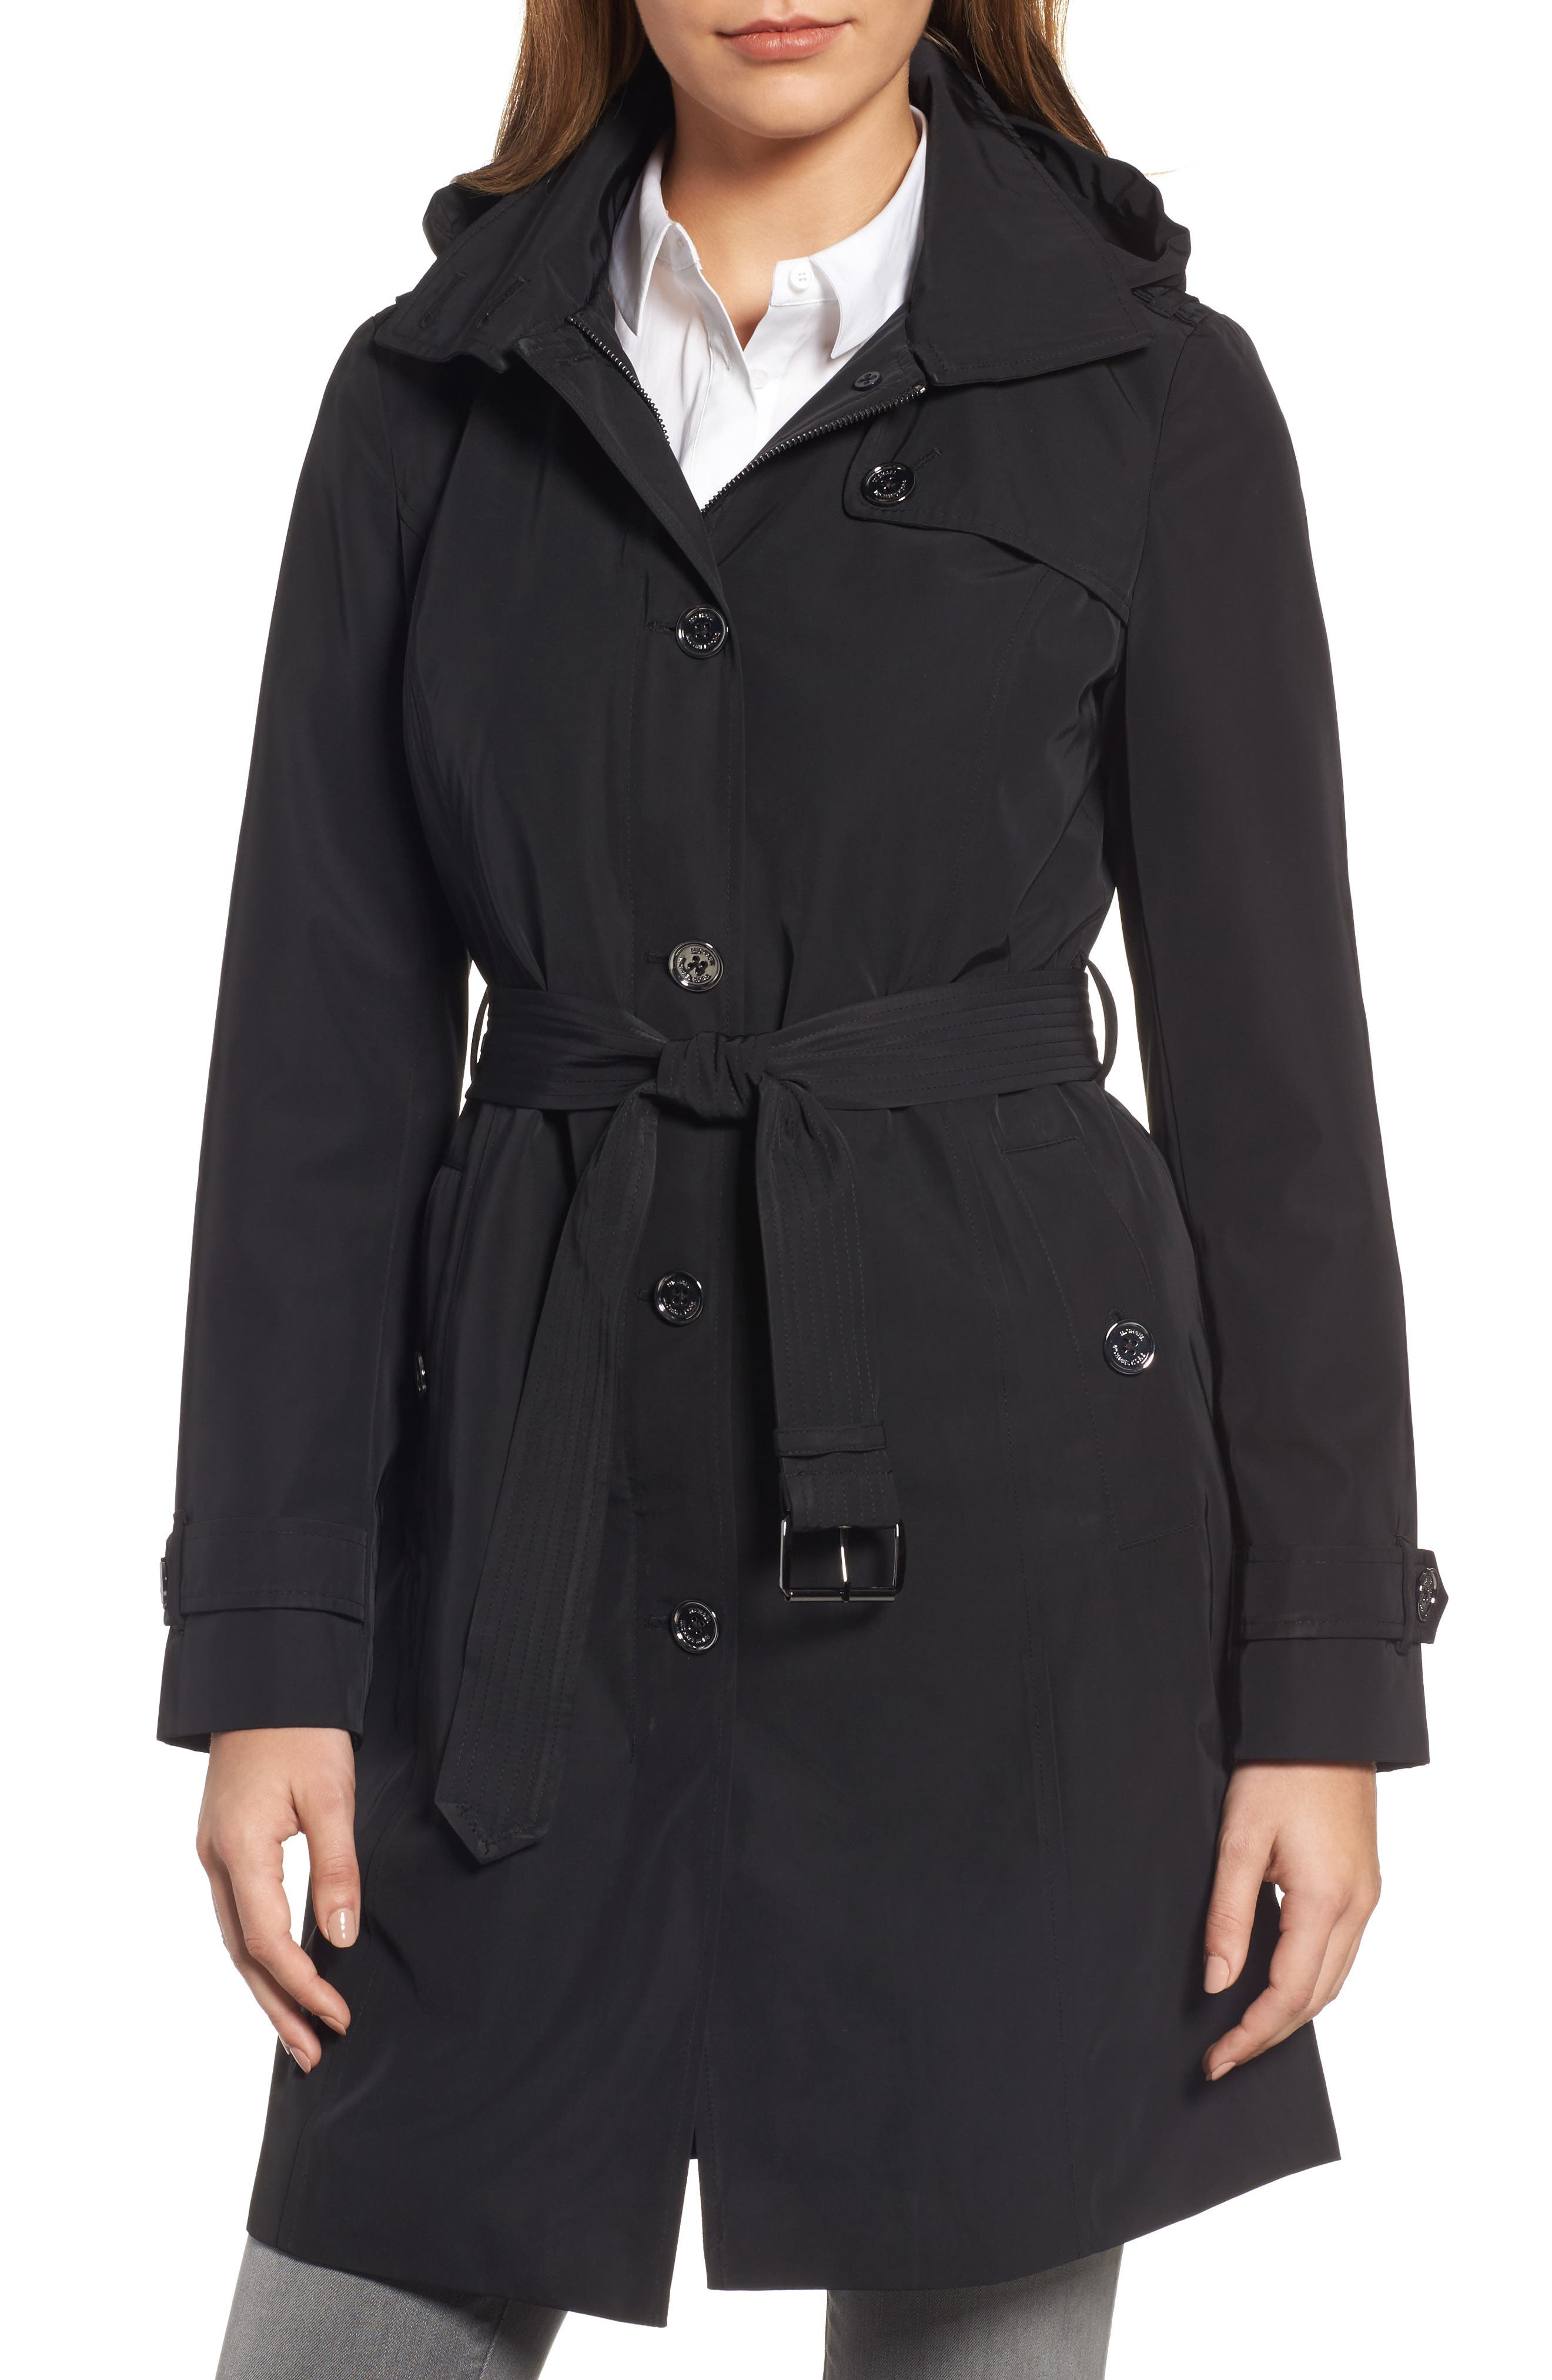 MICHAEL Michael Kors Packable Trench Coat with Hood